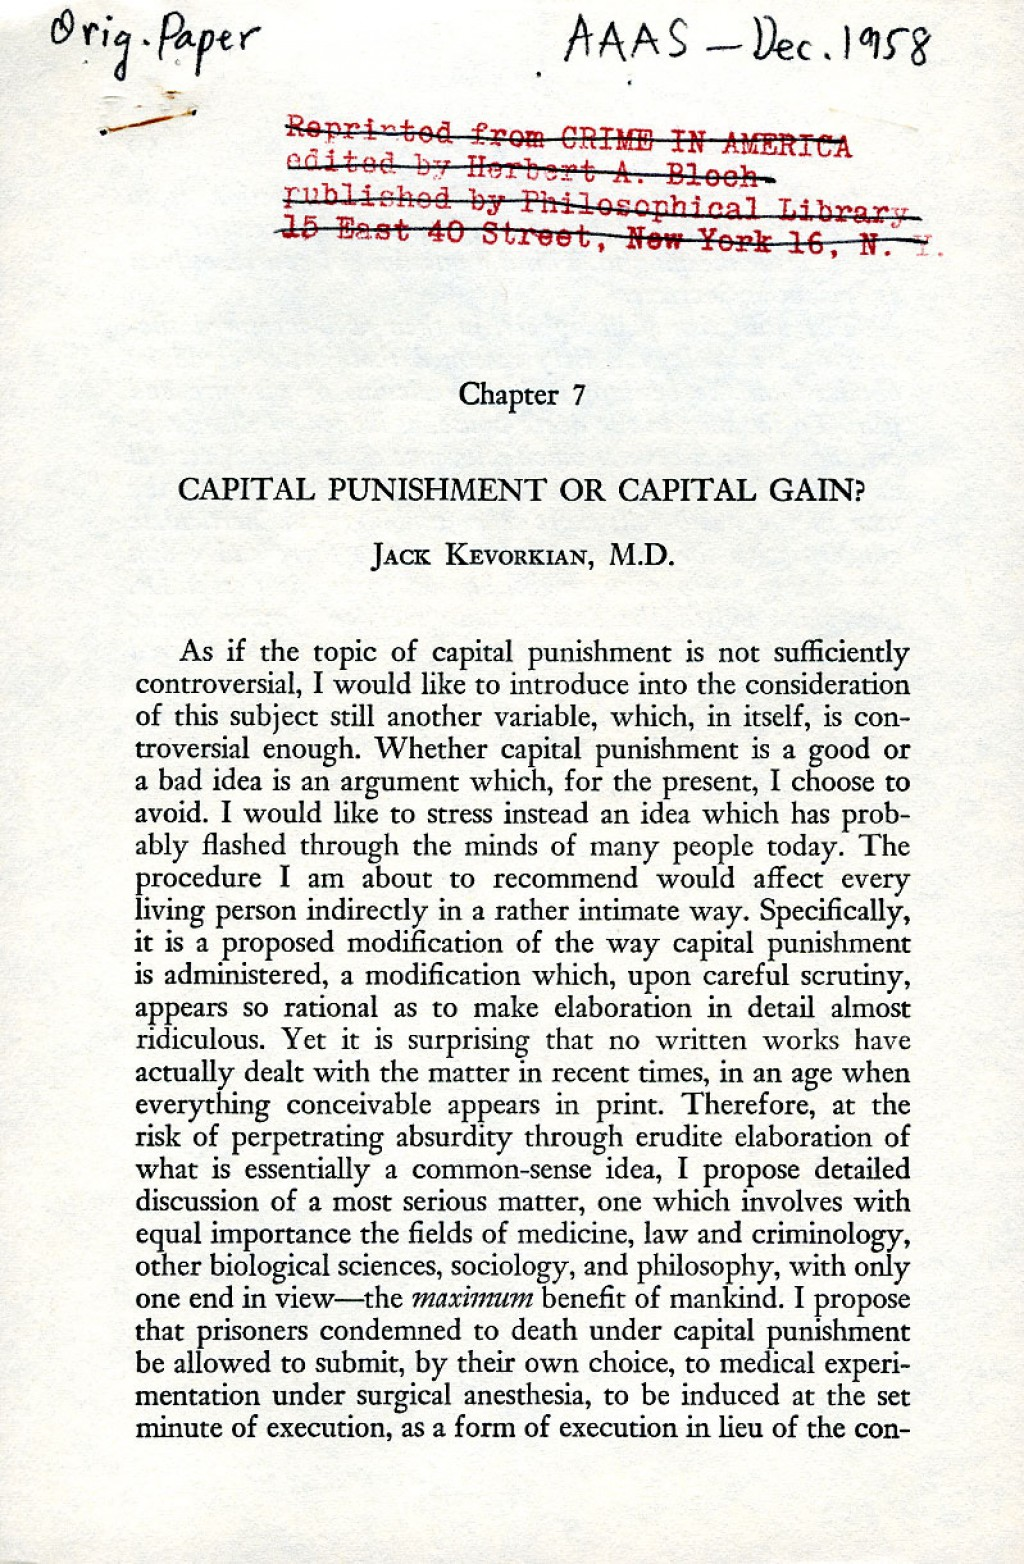 021 Essay Example Capital Breathtaking Promo Codes Capitalism In The Usa 1900 To 1940 New Deal Reviews Large